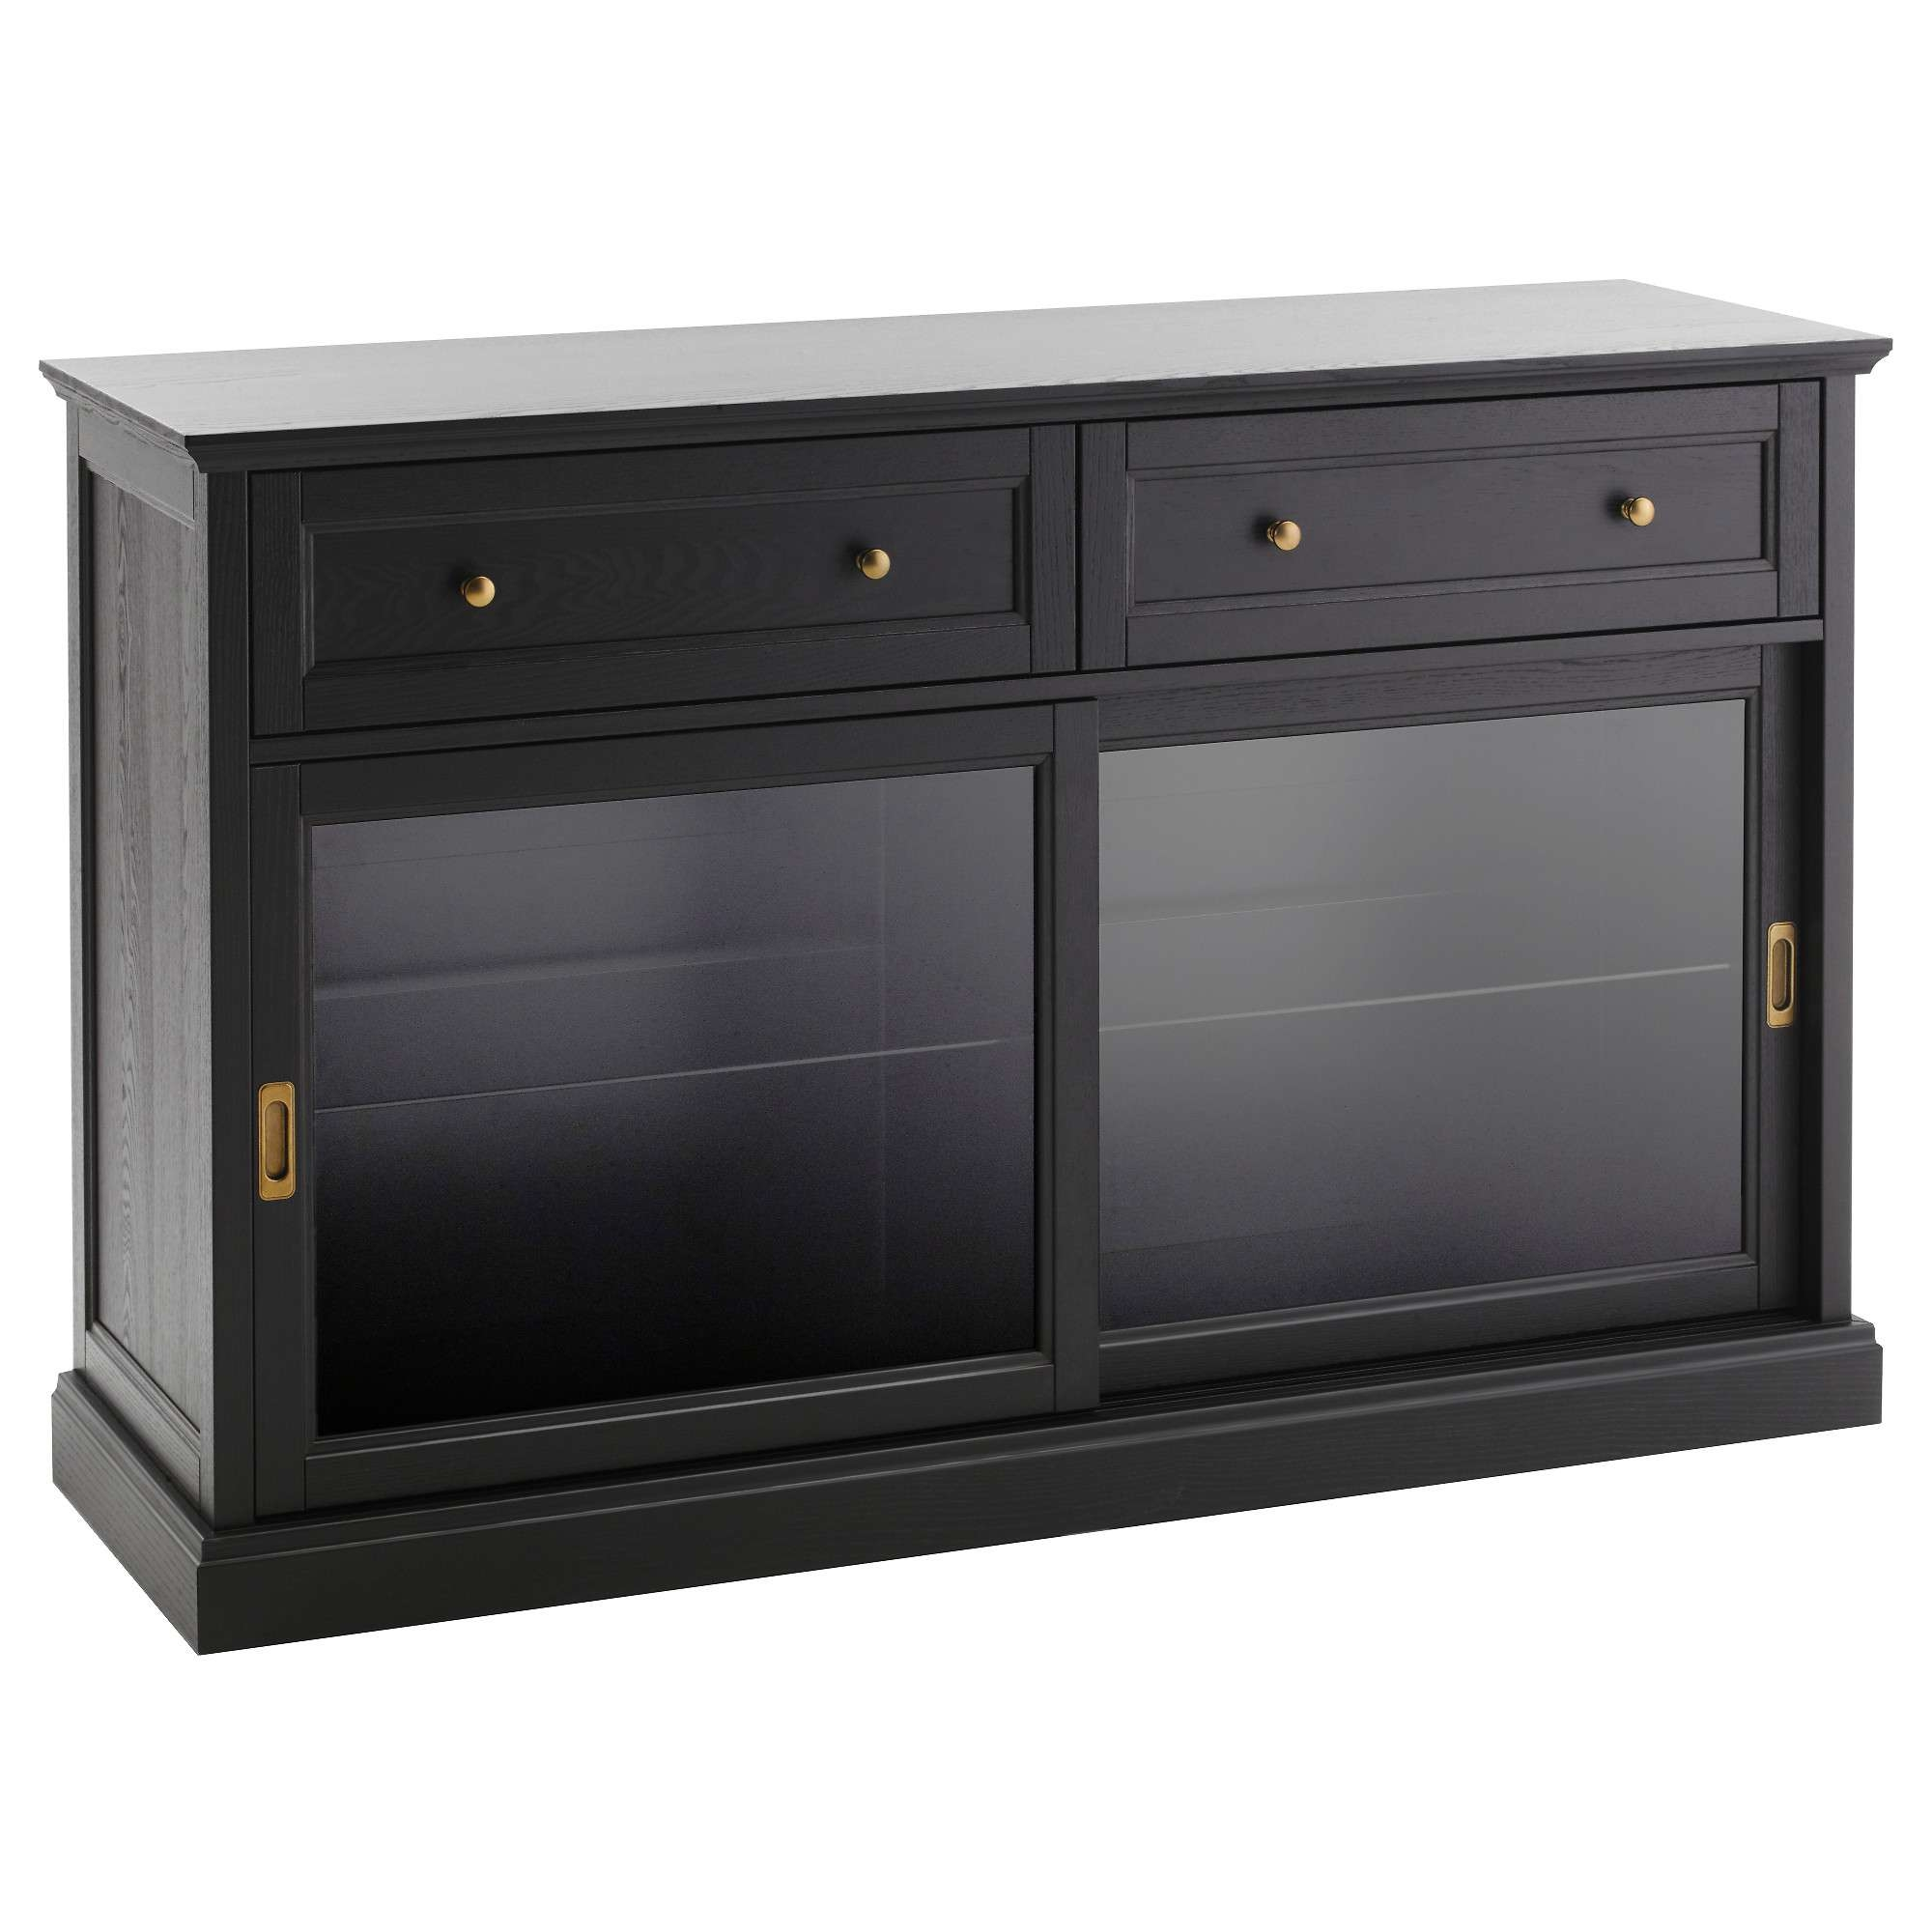 Buffet Tables & Sideboards – Ikea In Sideboards Buffet Servers (View 6 of 20)